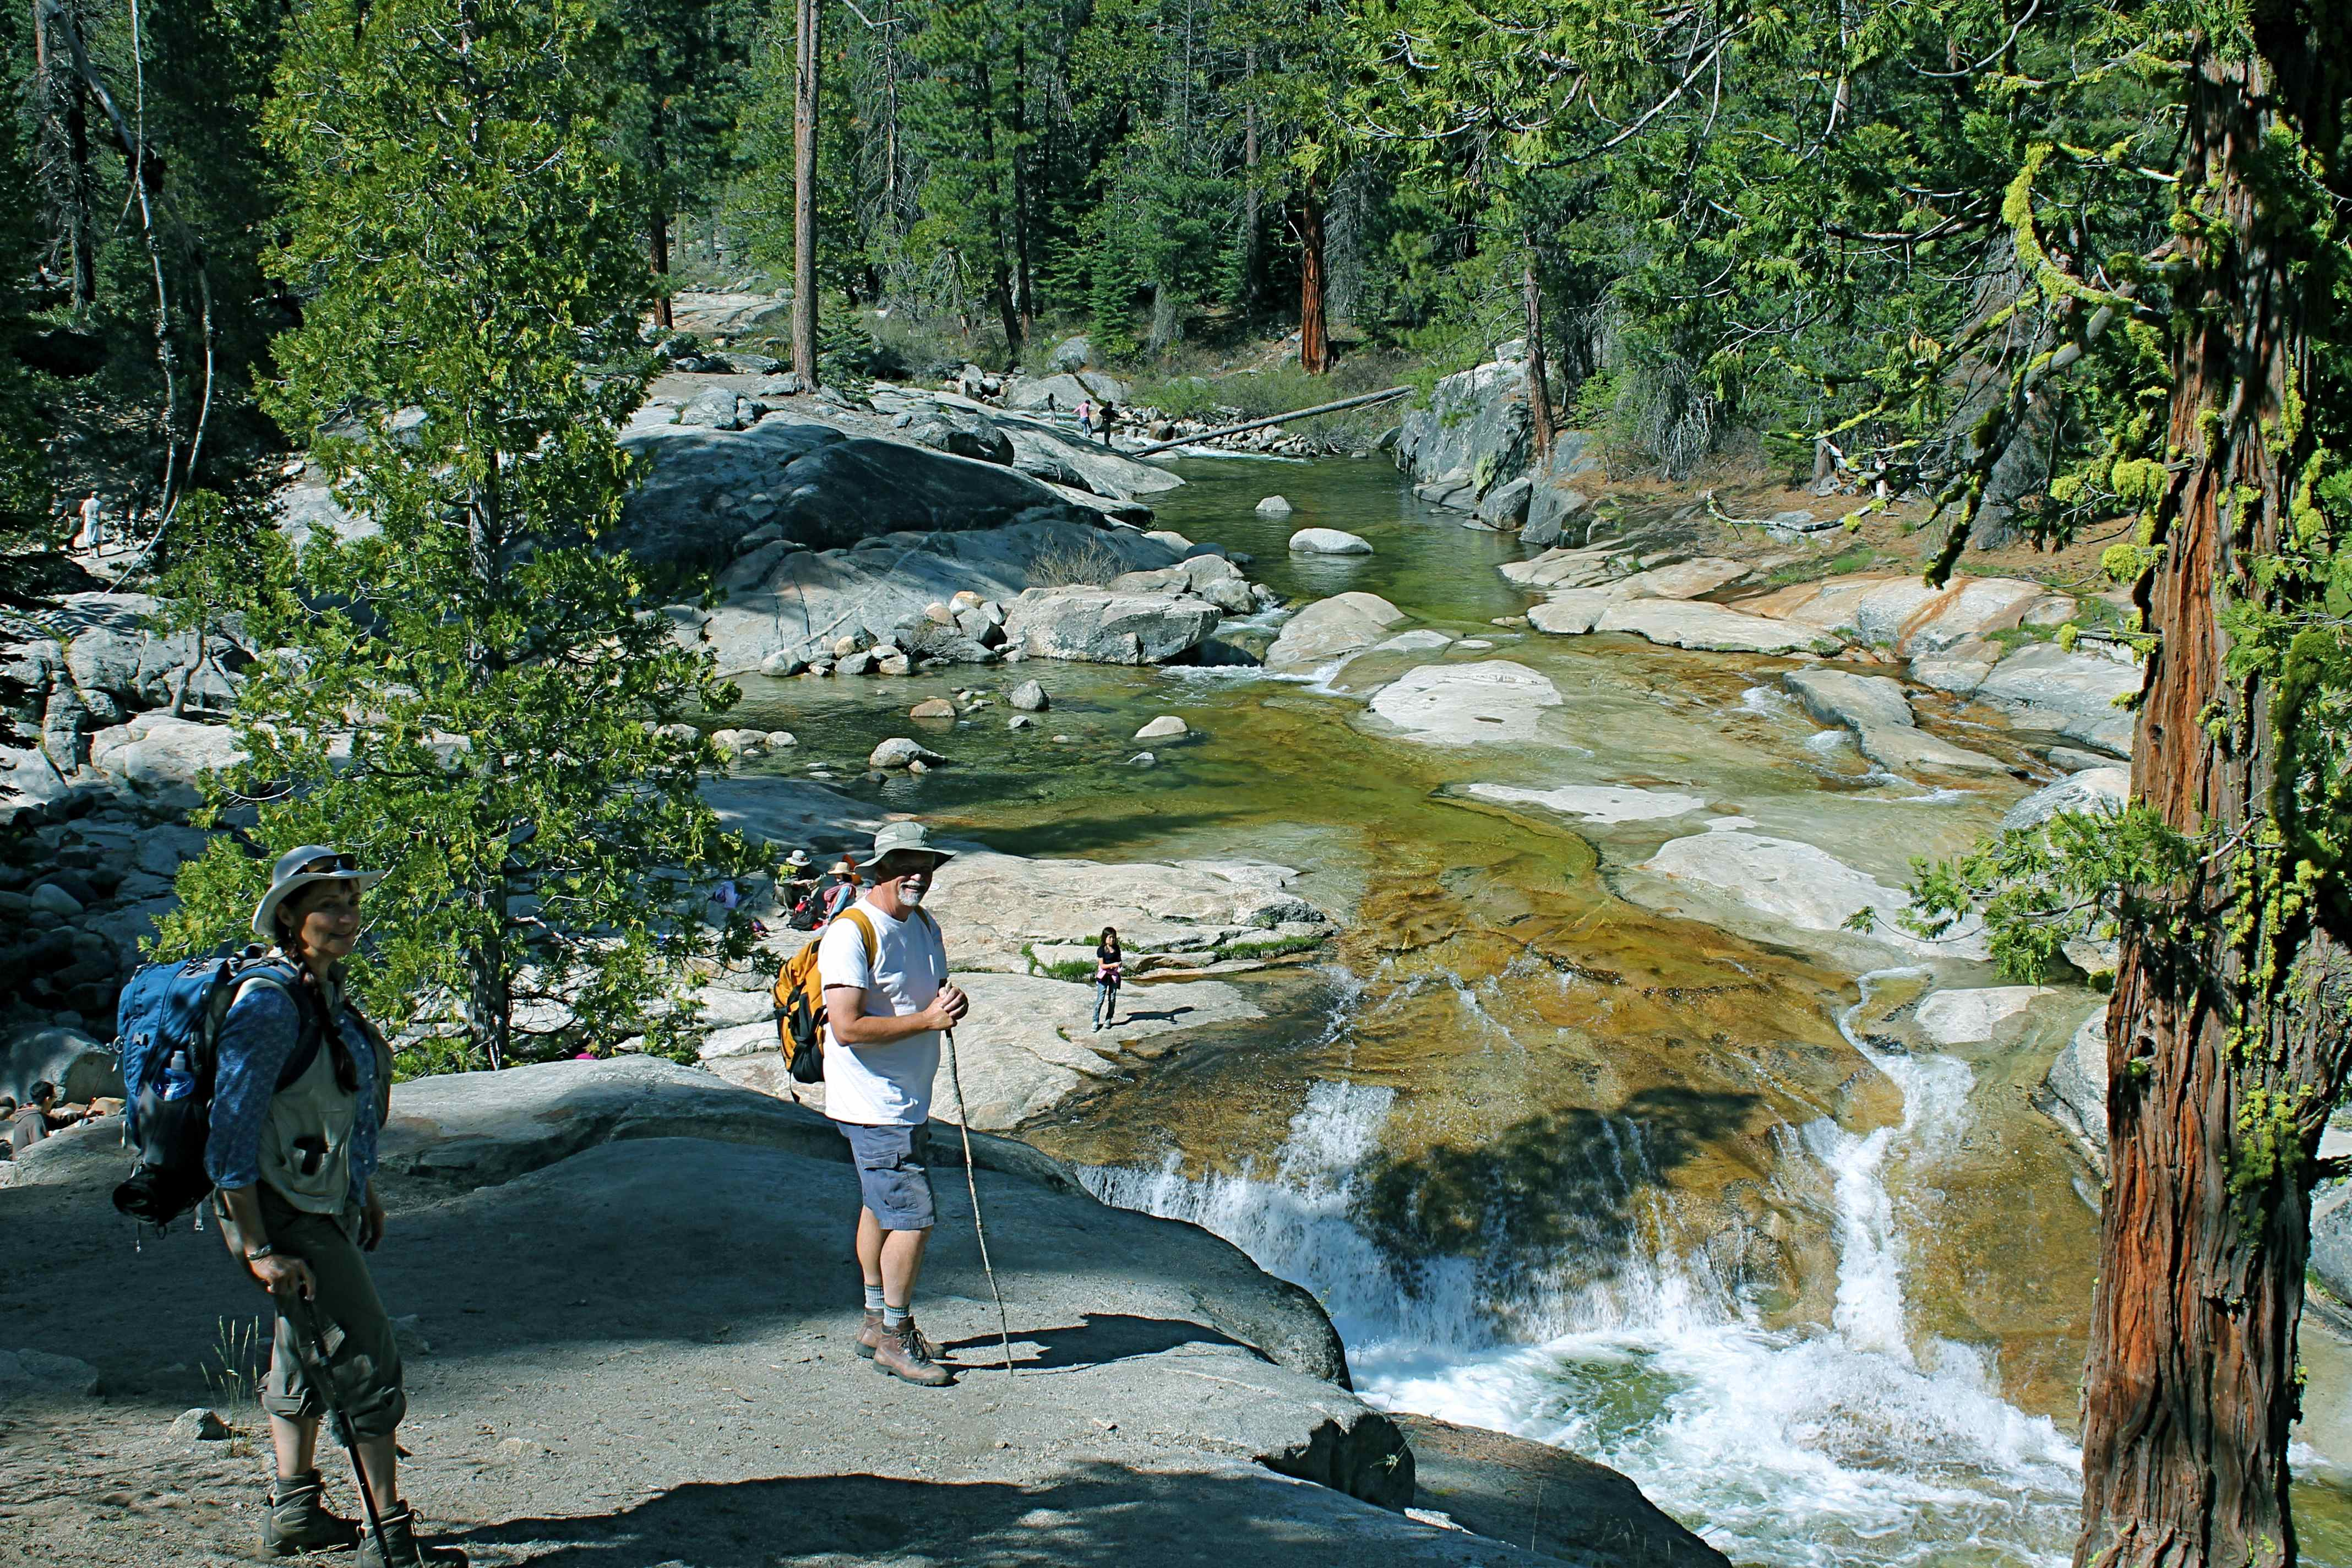 Ca rivers deal with the d c sillies u the river advocate june